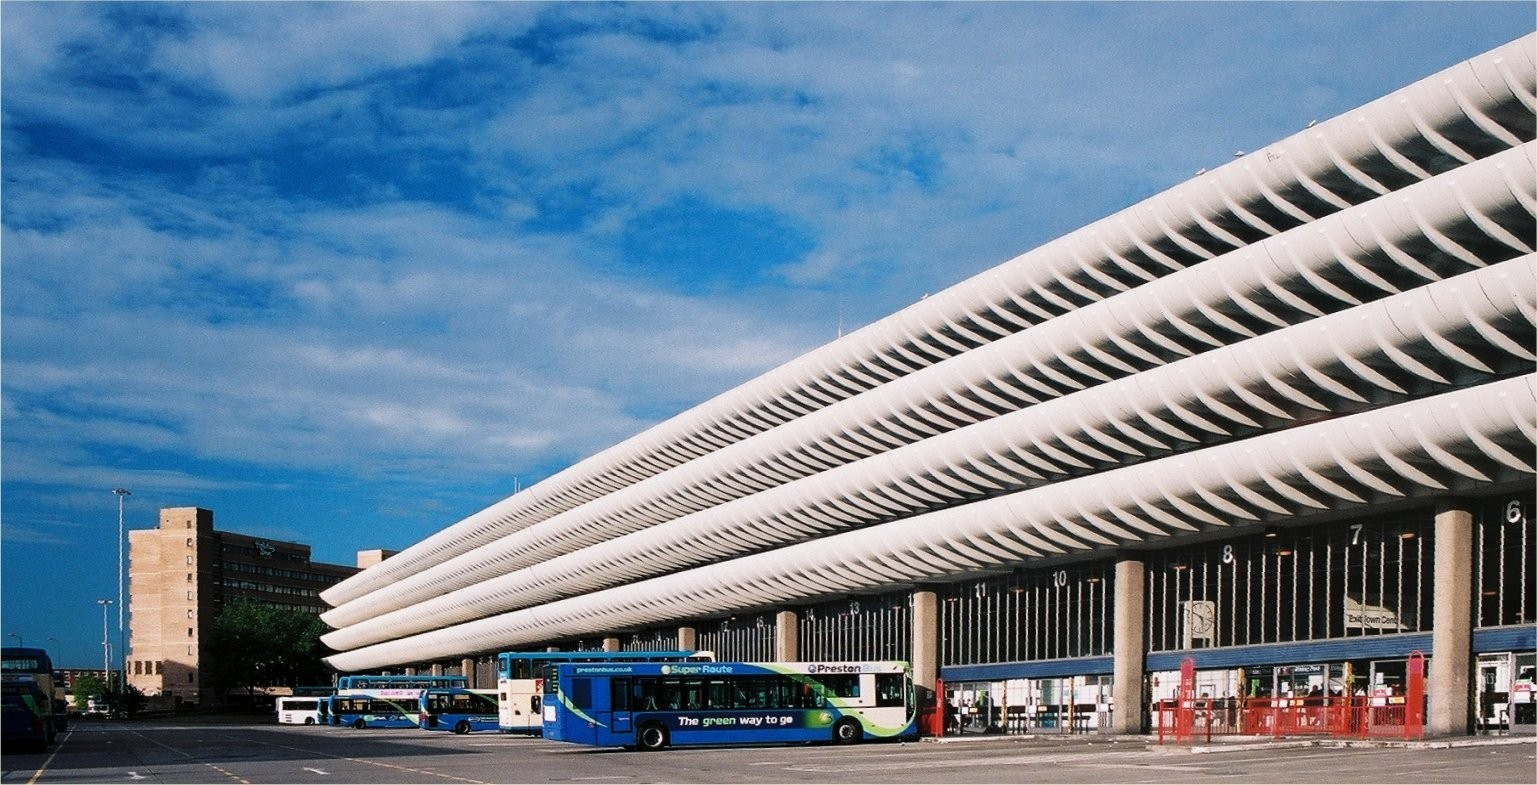 London Calling: On Fondness, After the local council announced their plans to demolish the iconic Preston Bus Station in favour of a new building elsewhere, it took a national backlash before the building was eventually saved, being listed in September 2013. Image © Wikimedia Commons